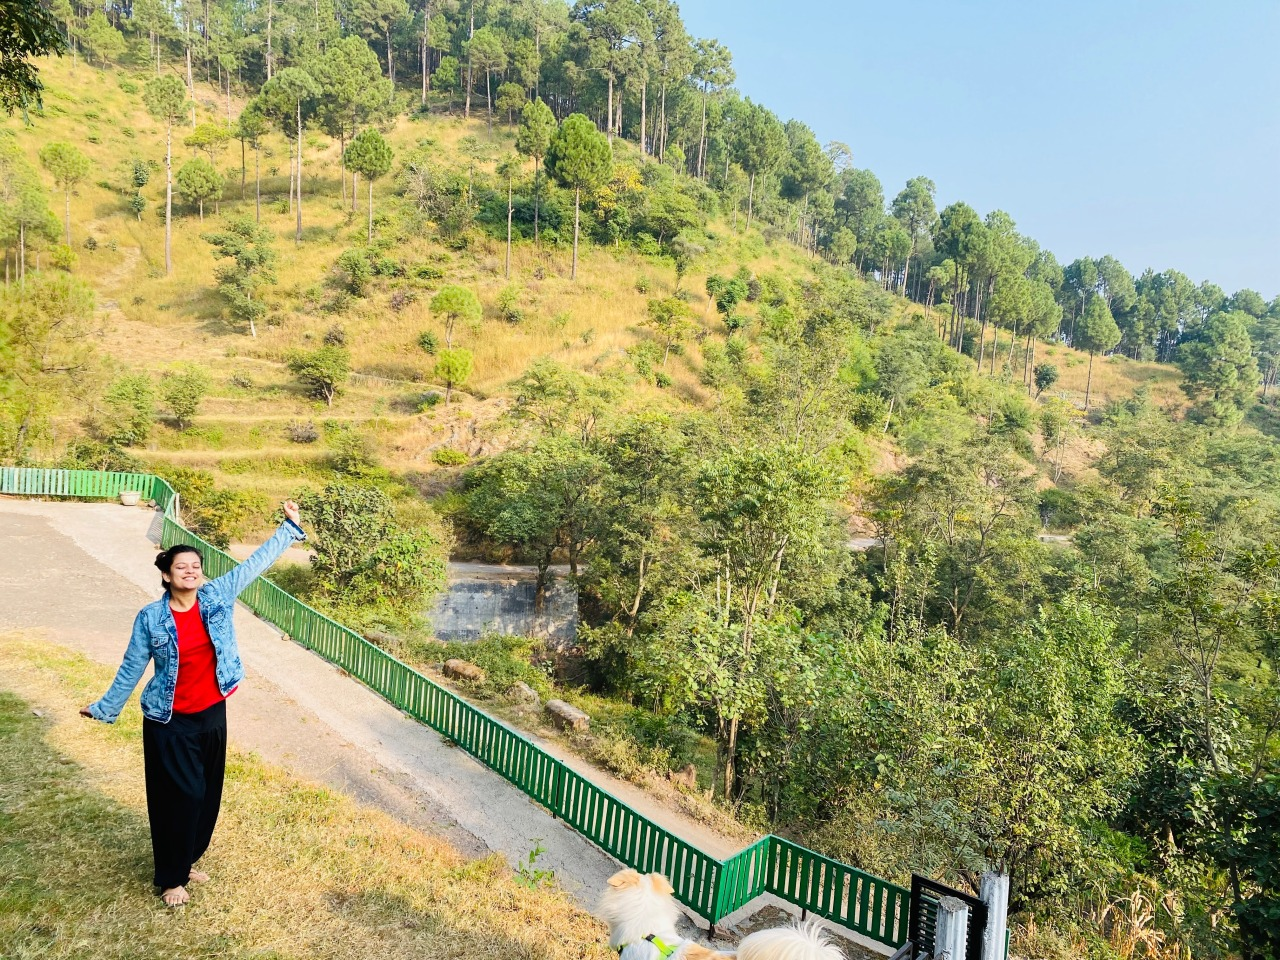 Roadtrip from Bangalore to Manali – a longstaycation